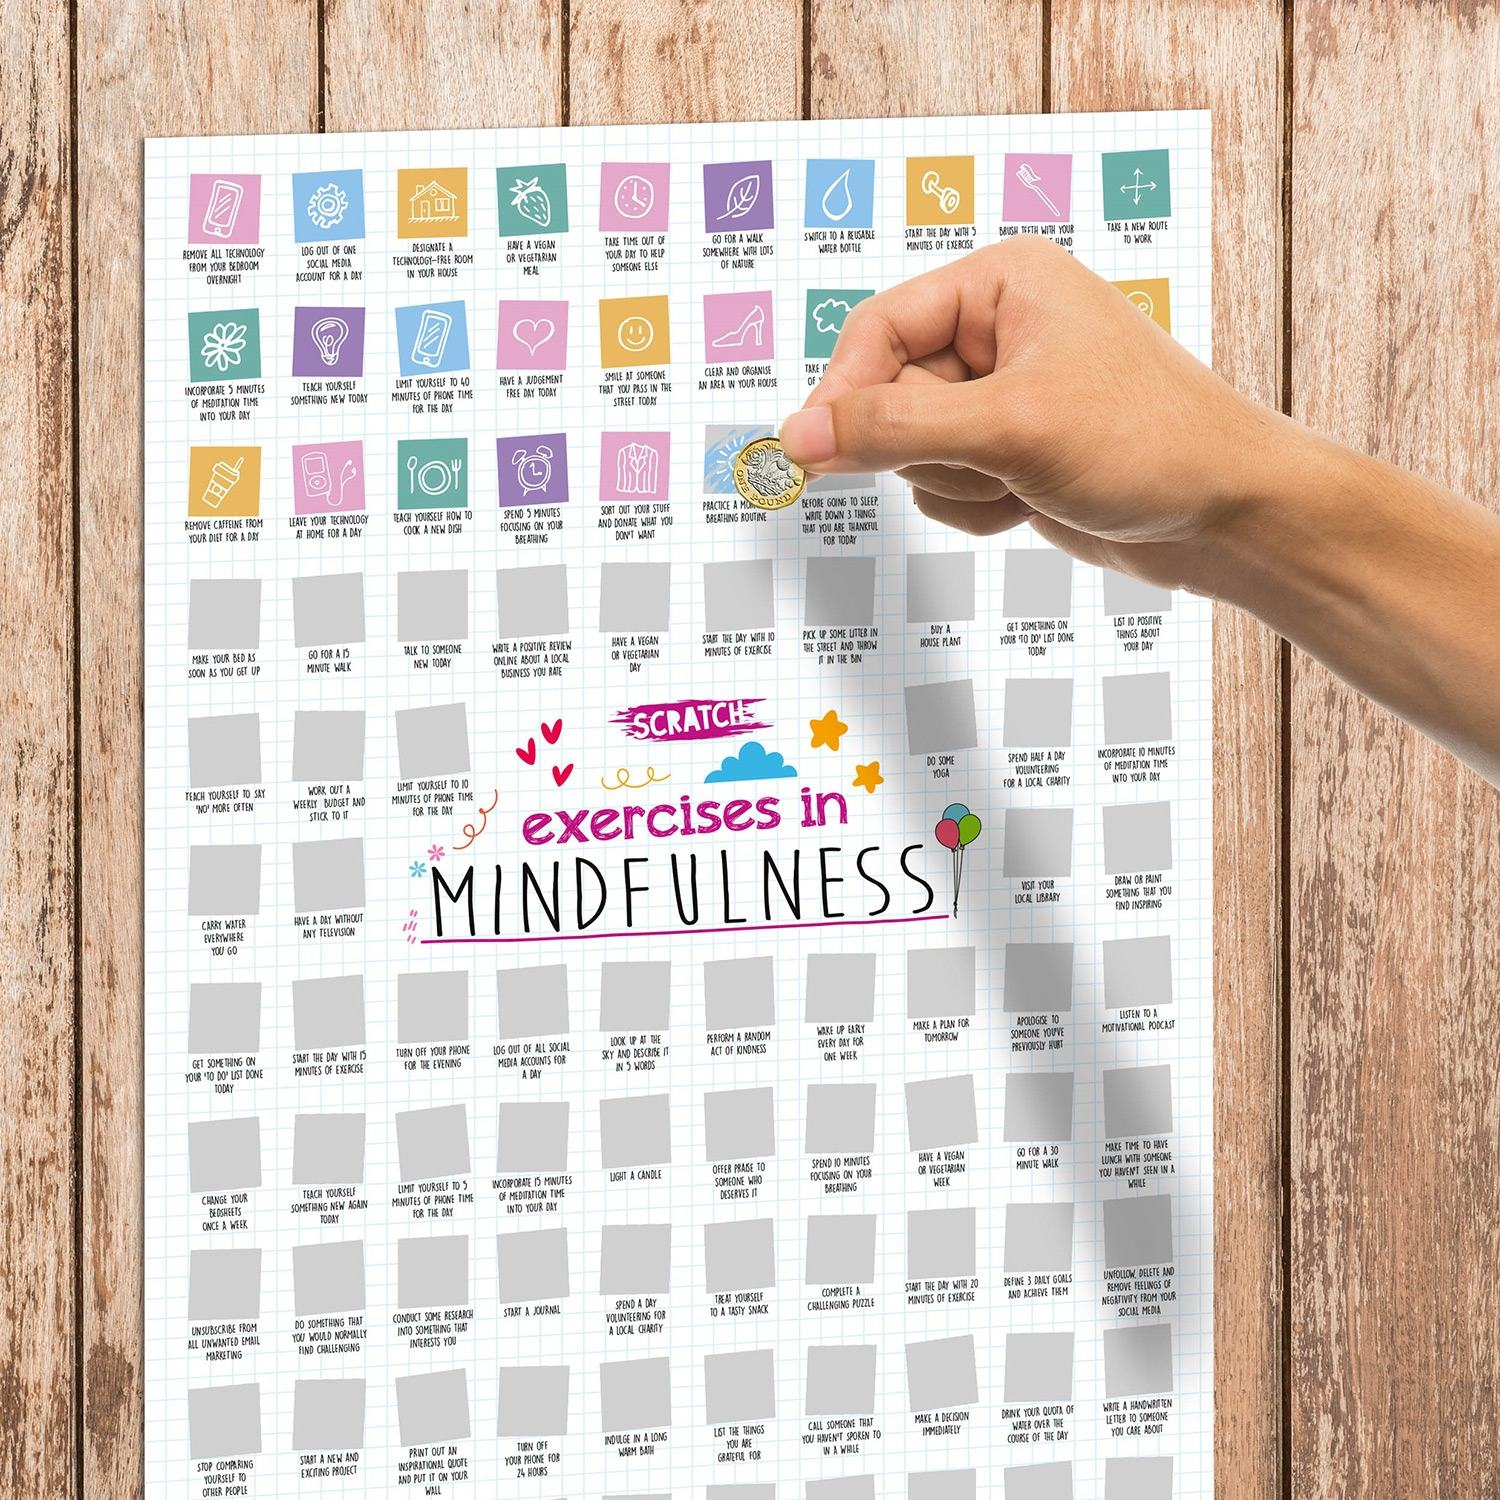 100 Exercises in Mindfulness A2 Scratch Poster